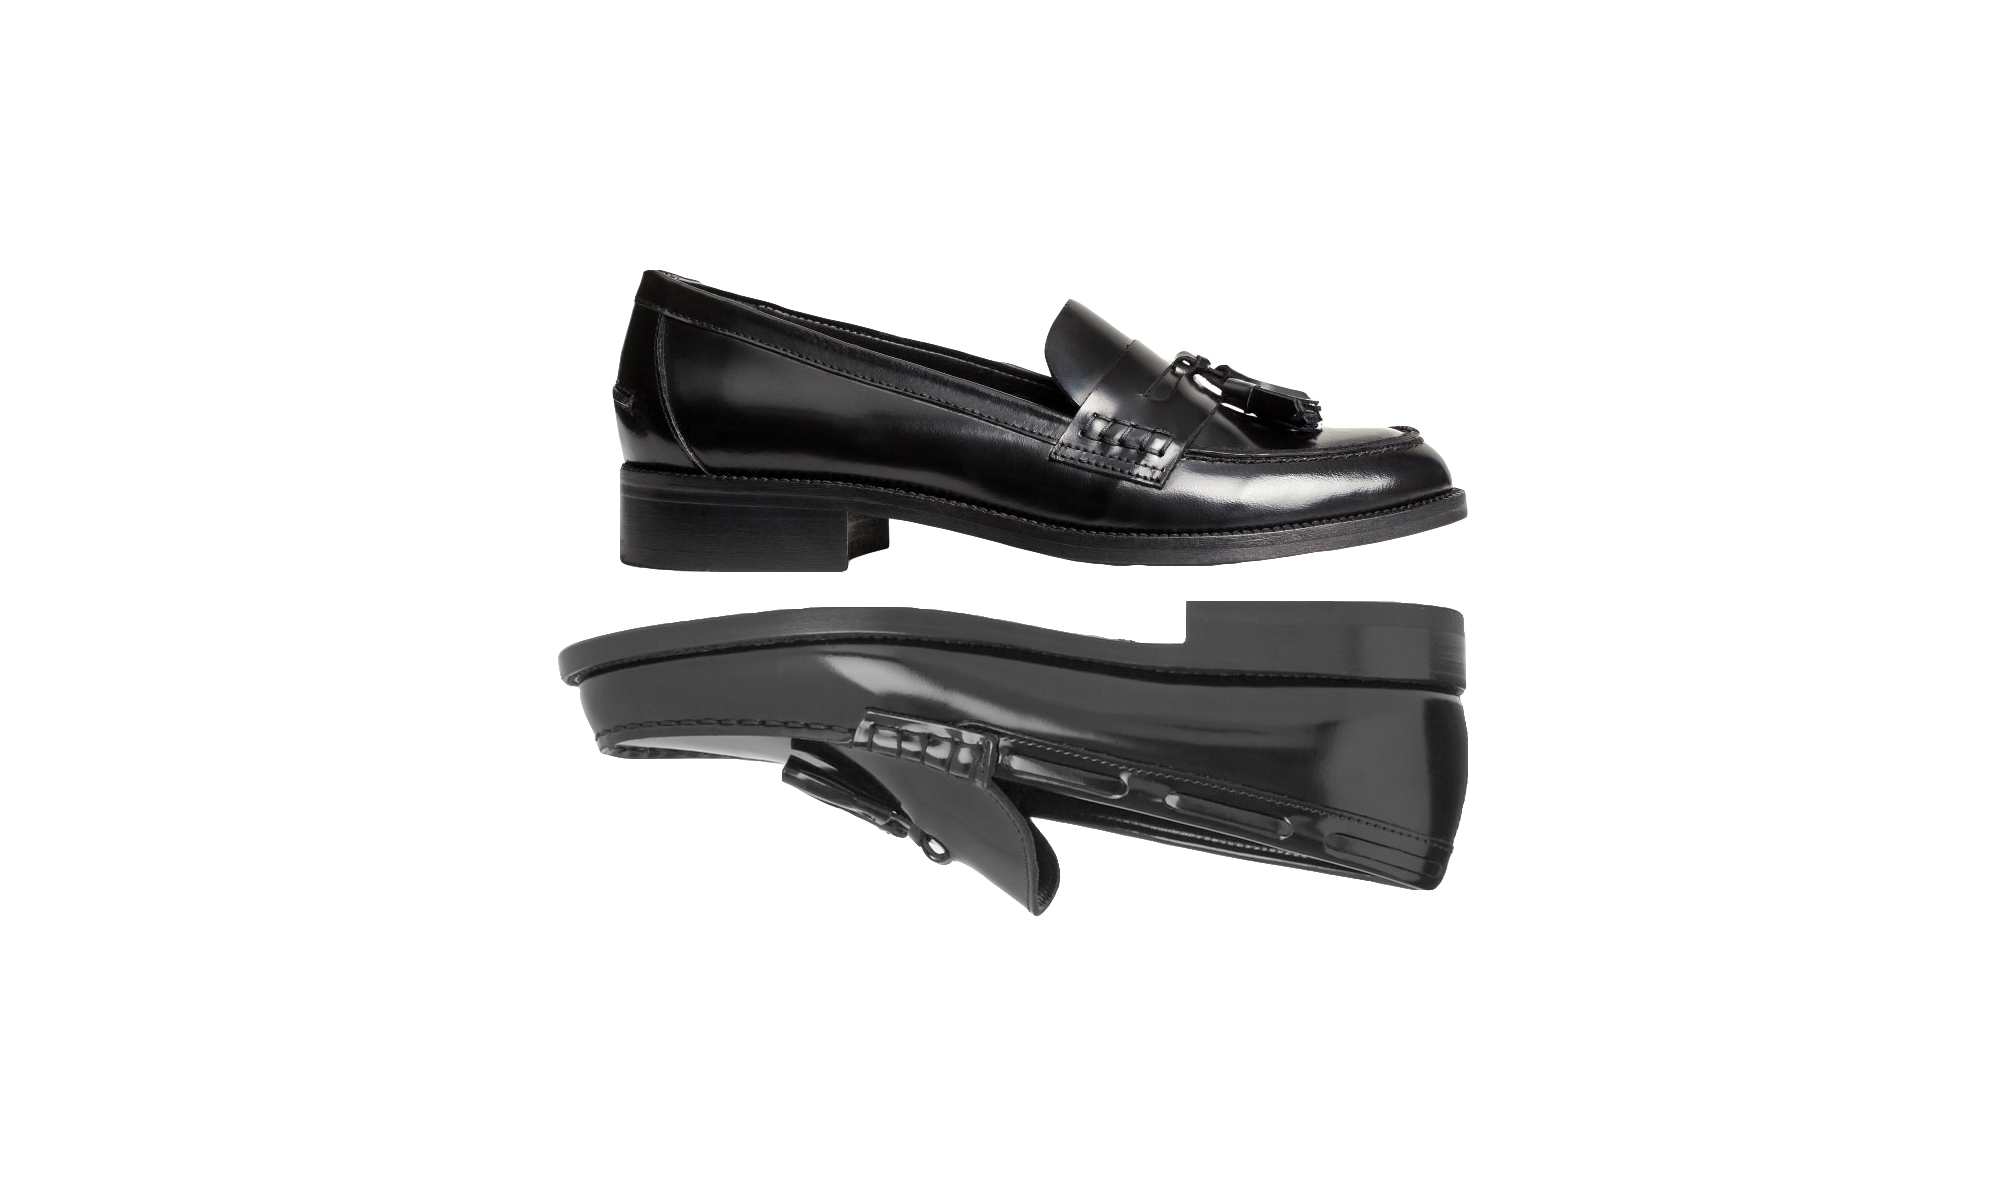 Loafers lyx vs budget